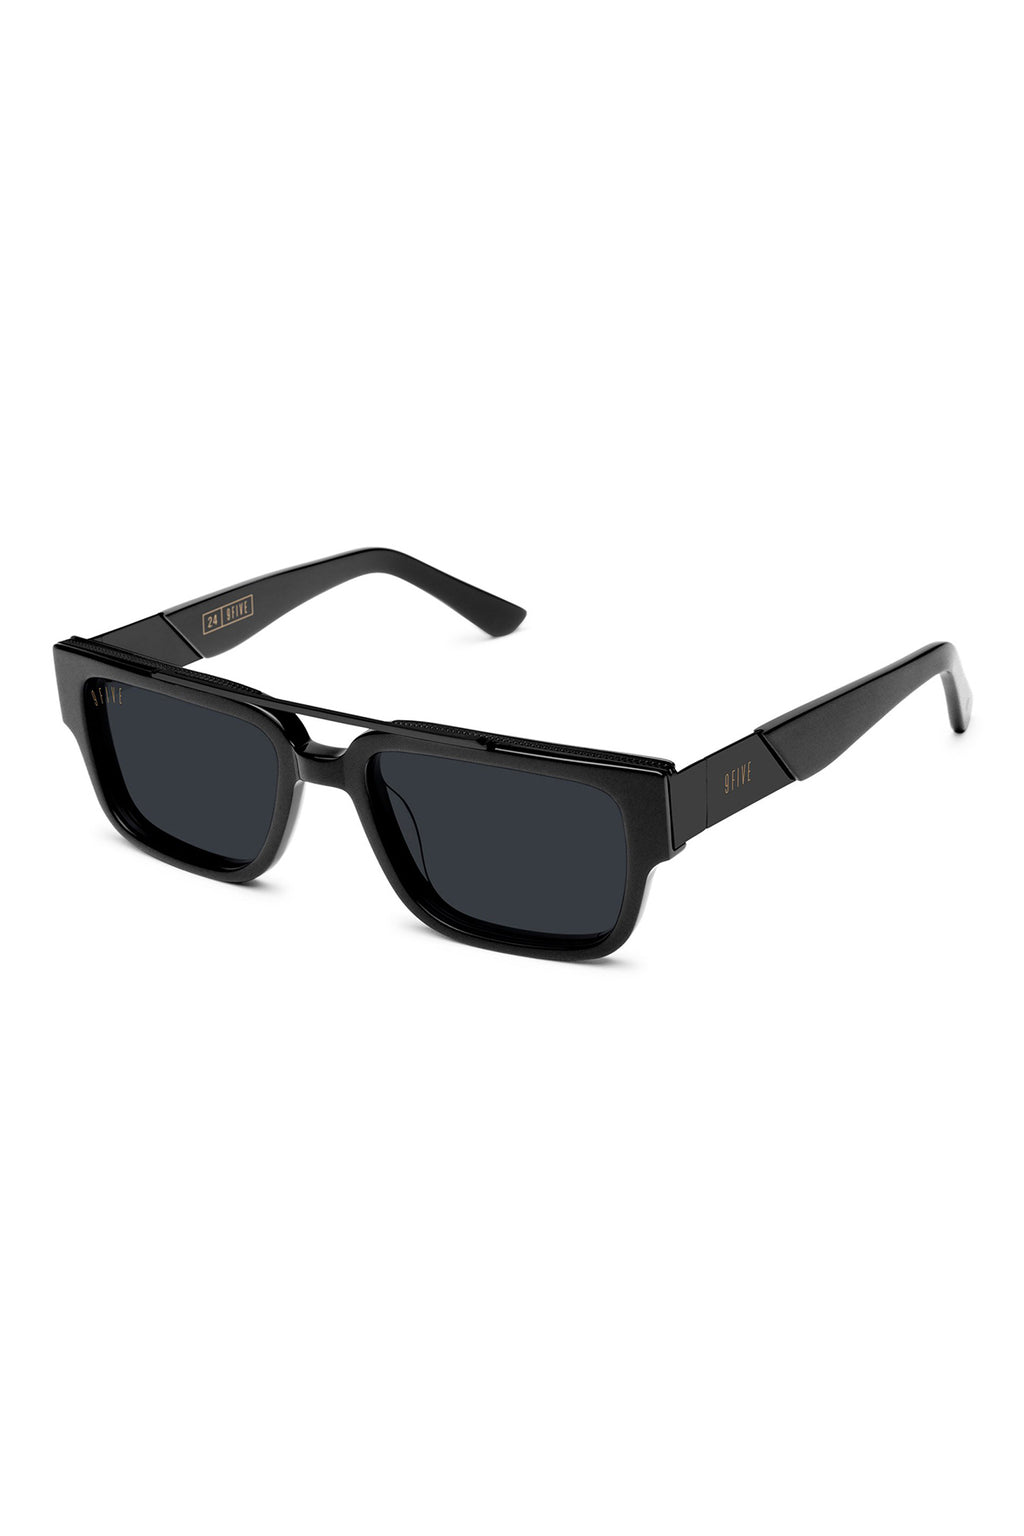 9Five Sunglasses - 24 Matte Black Angle